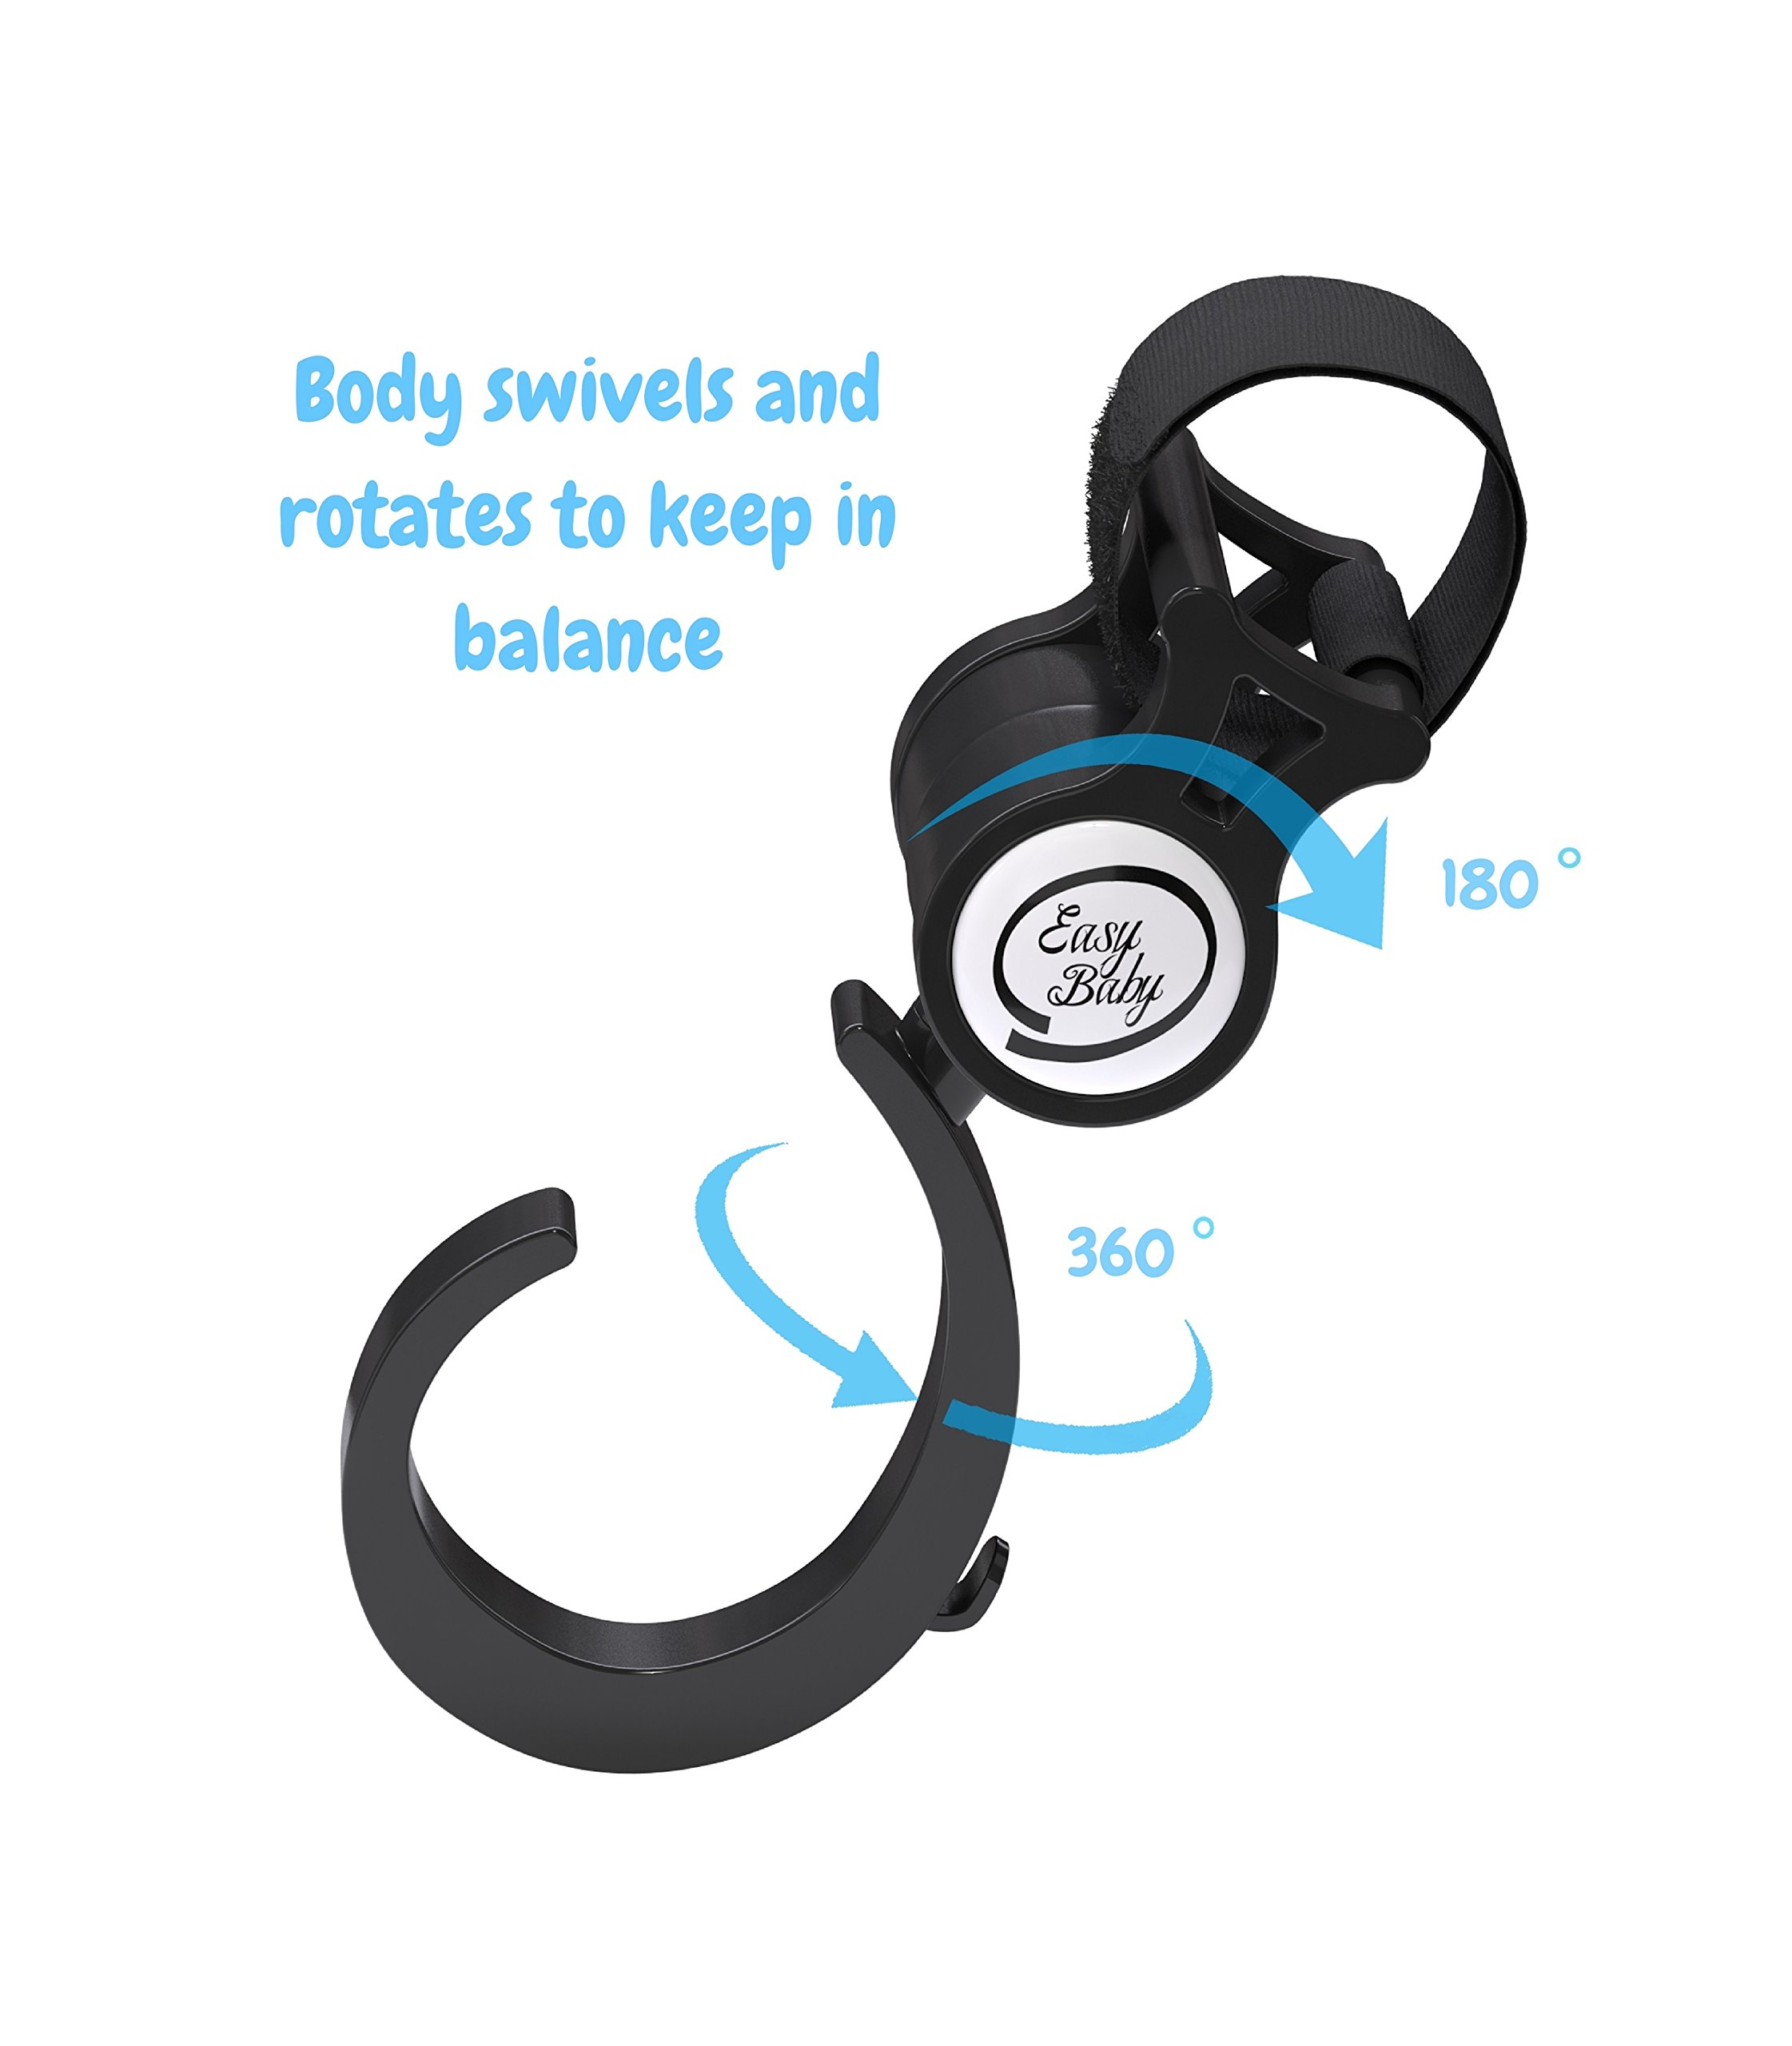 Stroller Hook - 2 Pack of Multi Purpose Hooks - Hanger for Baby Diaper Bags, Groceries, Clothing, Purse - Great Accessory for Mommy when Jogging, Walking or Shopping by Easy Baby (Image #6)